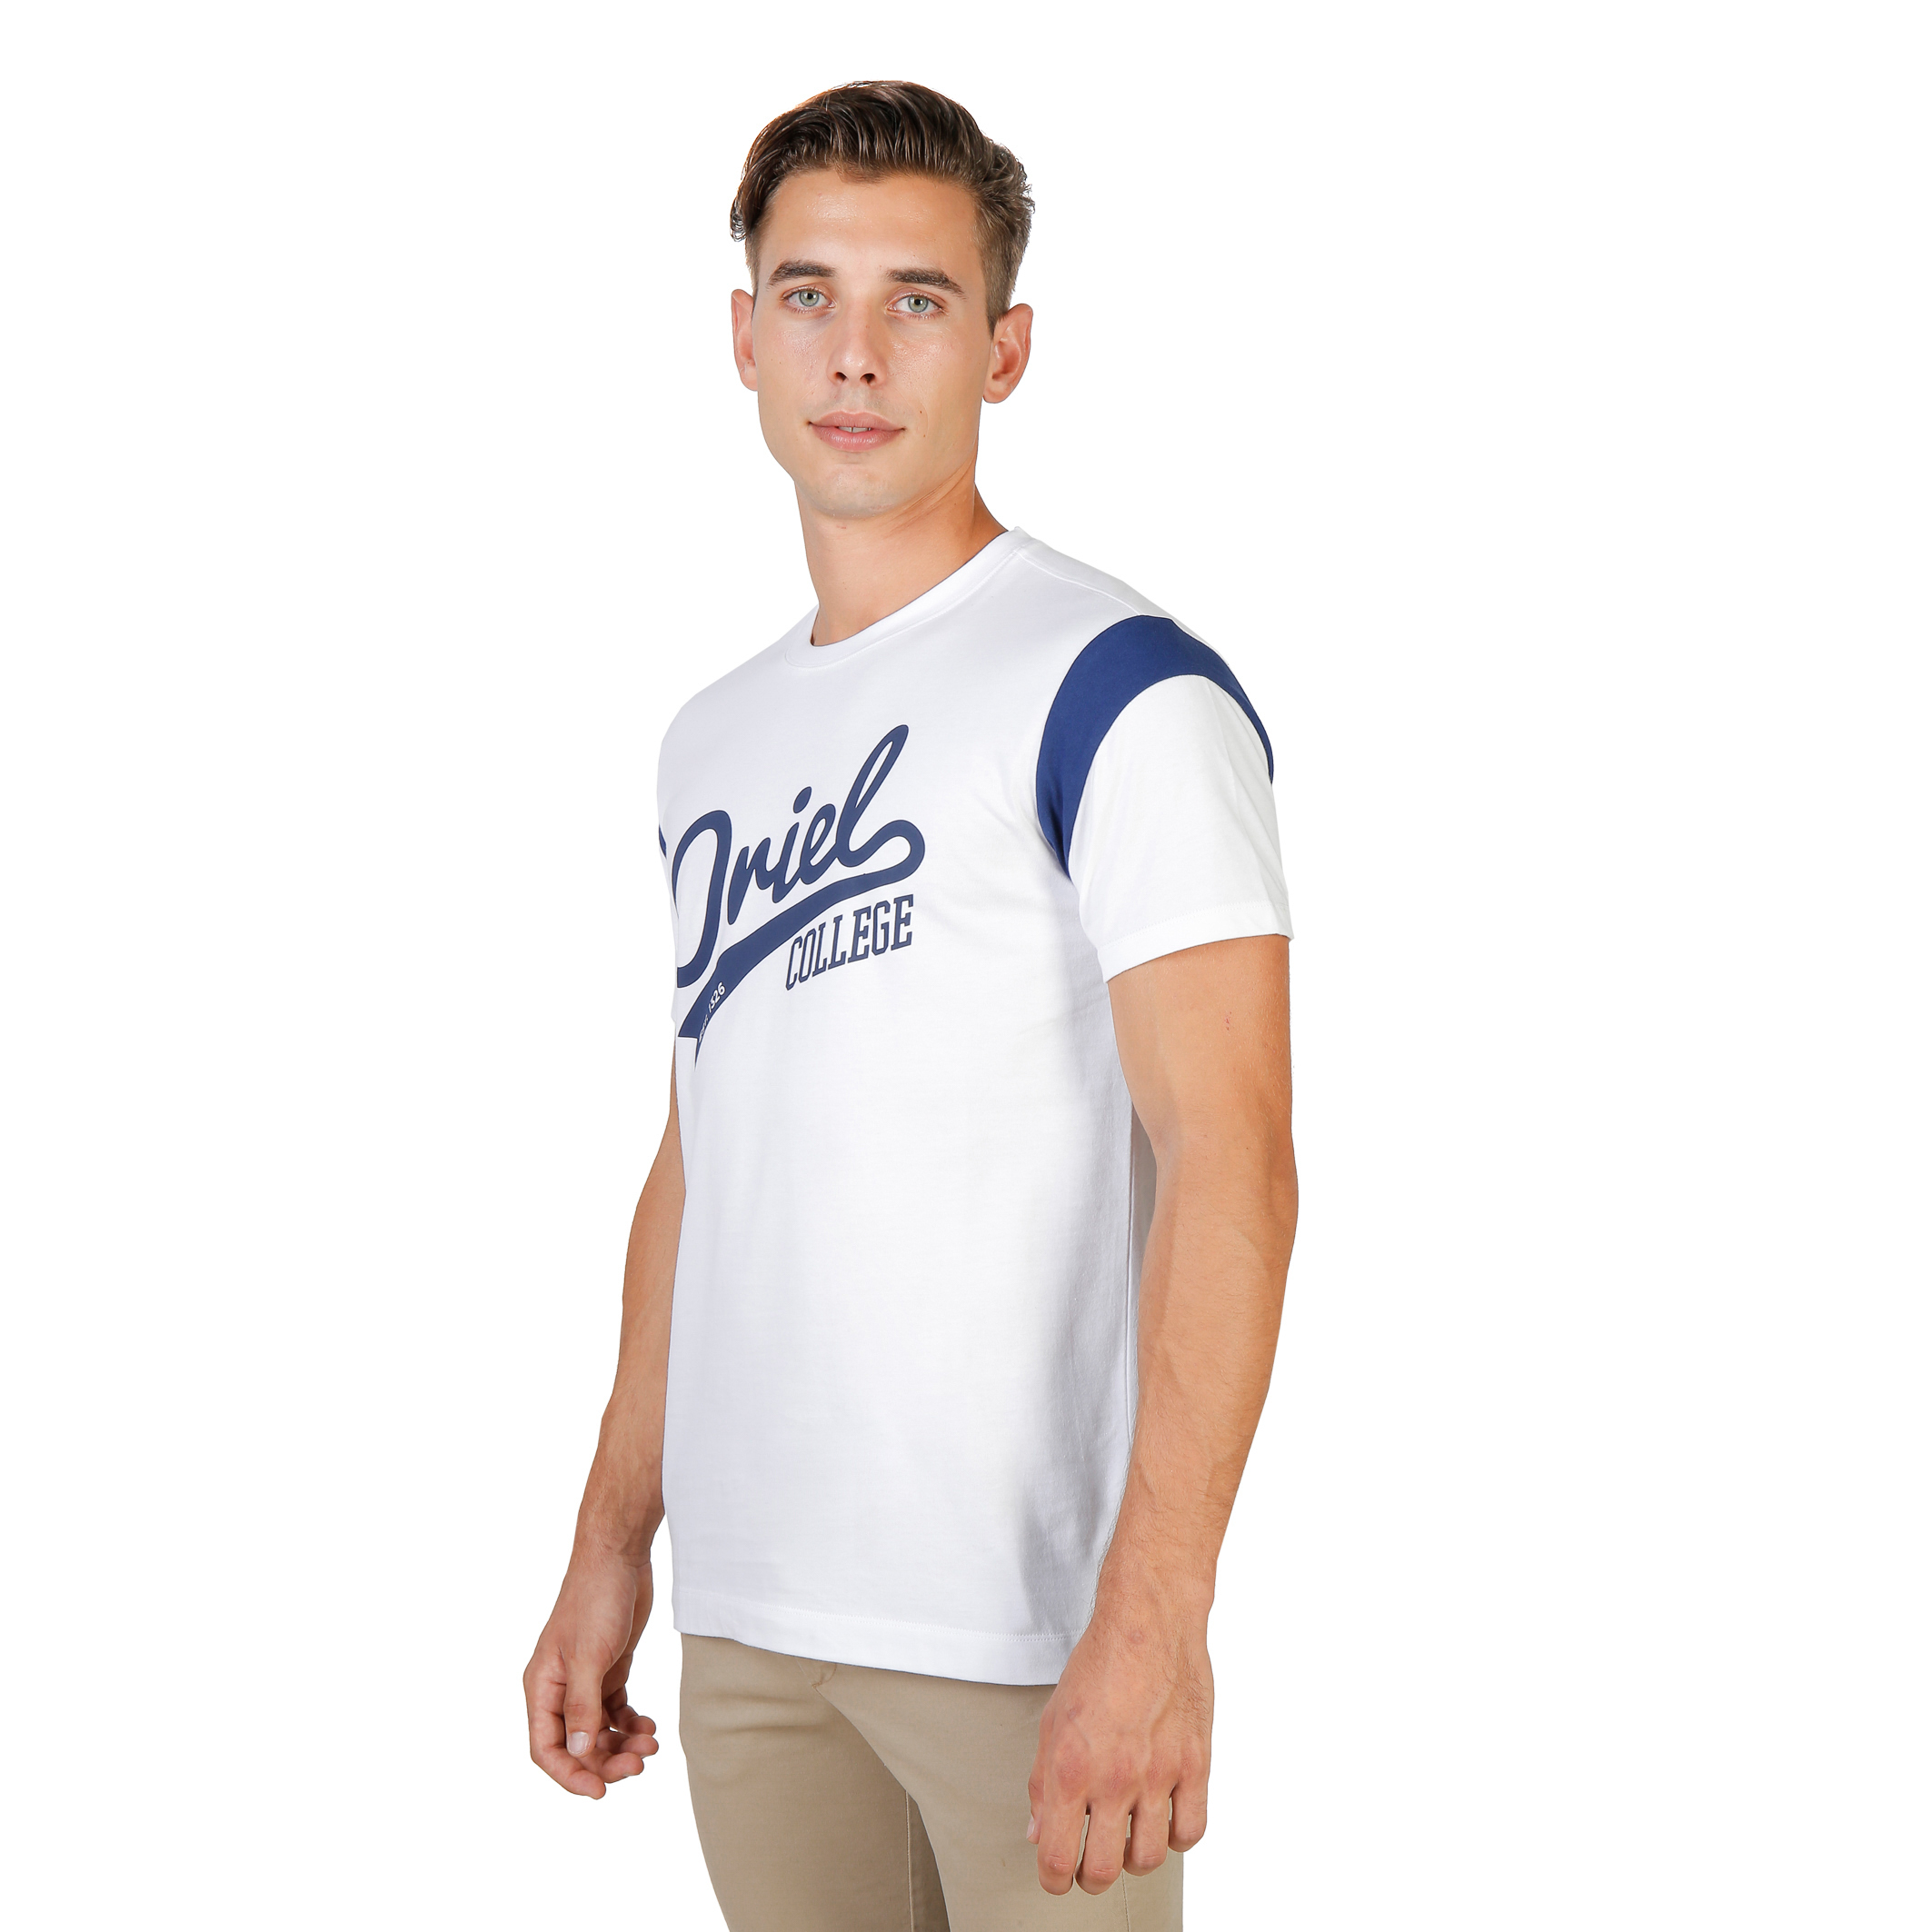 Tee-shirts  Oxford University ORIEL-VARSITY-MM white